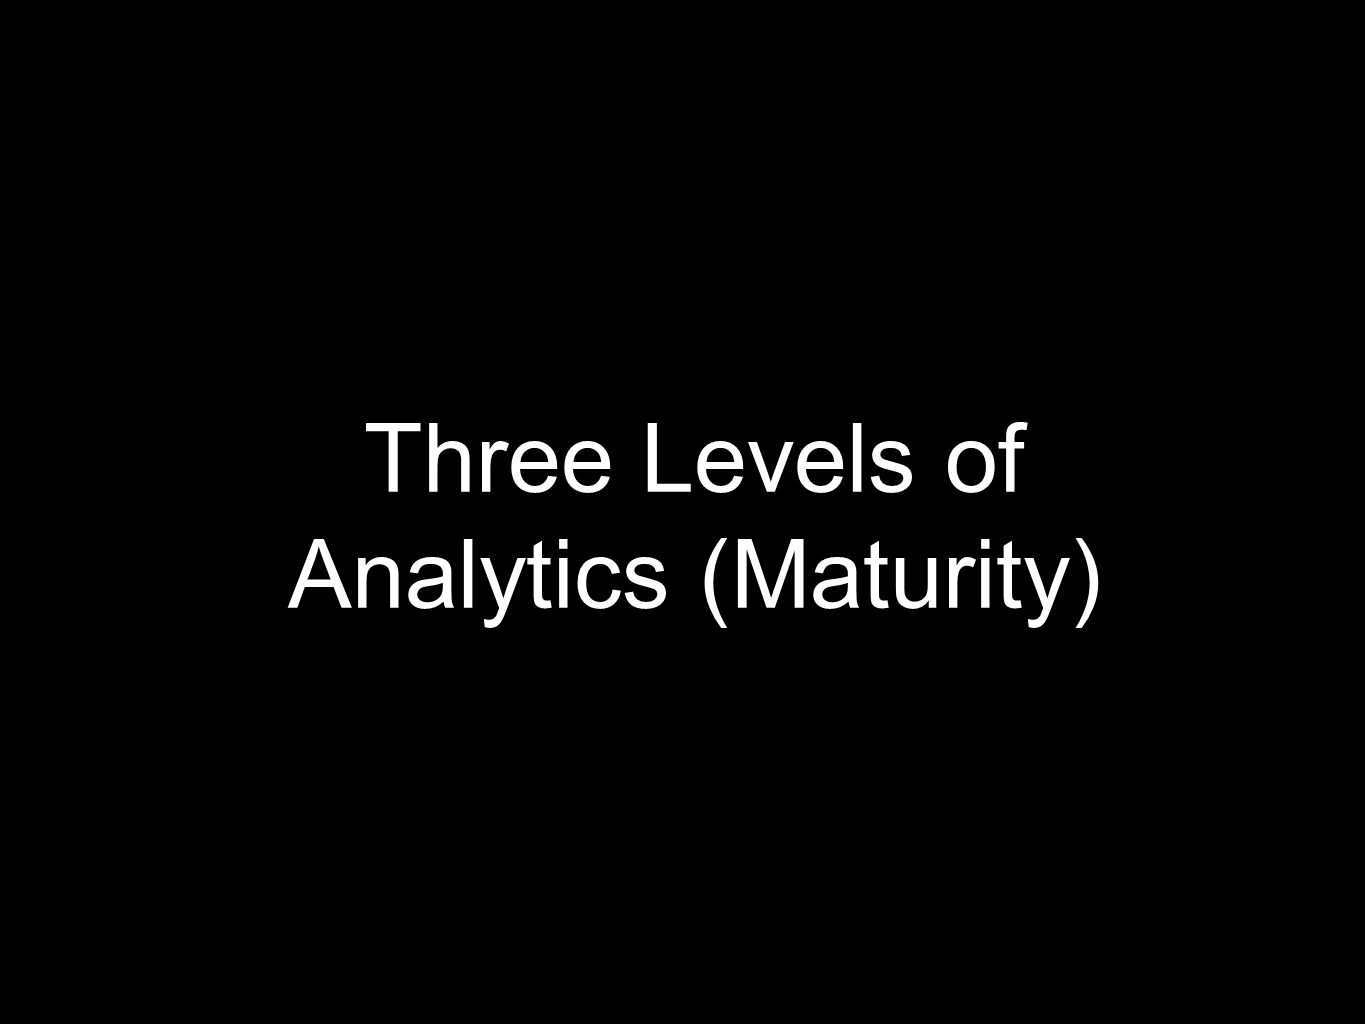 Three Levels of Analytics (Maturity)